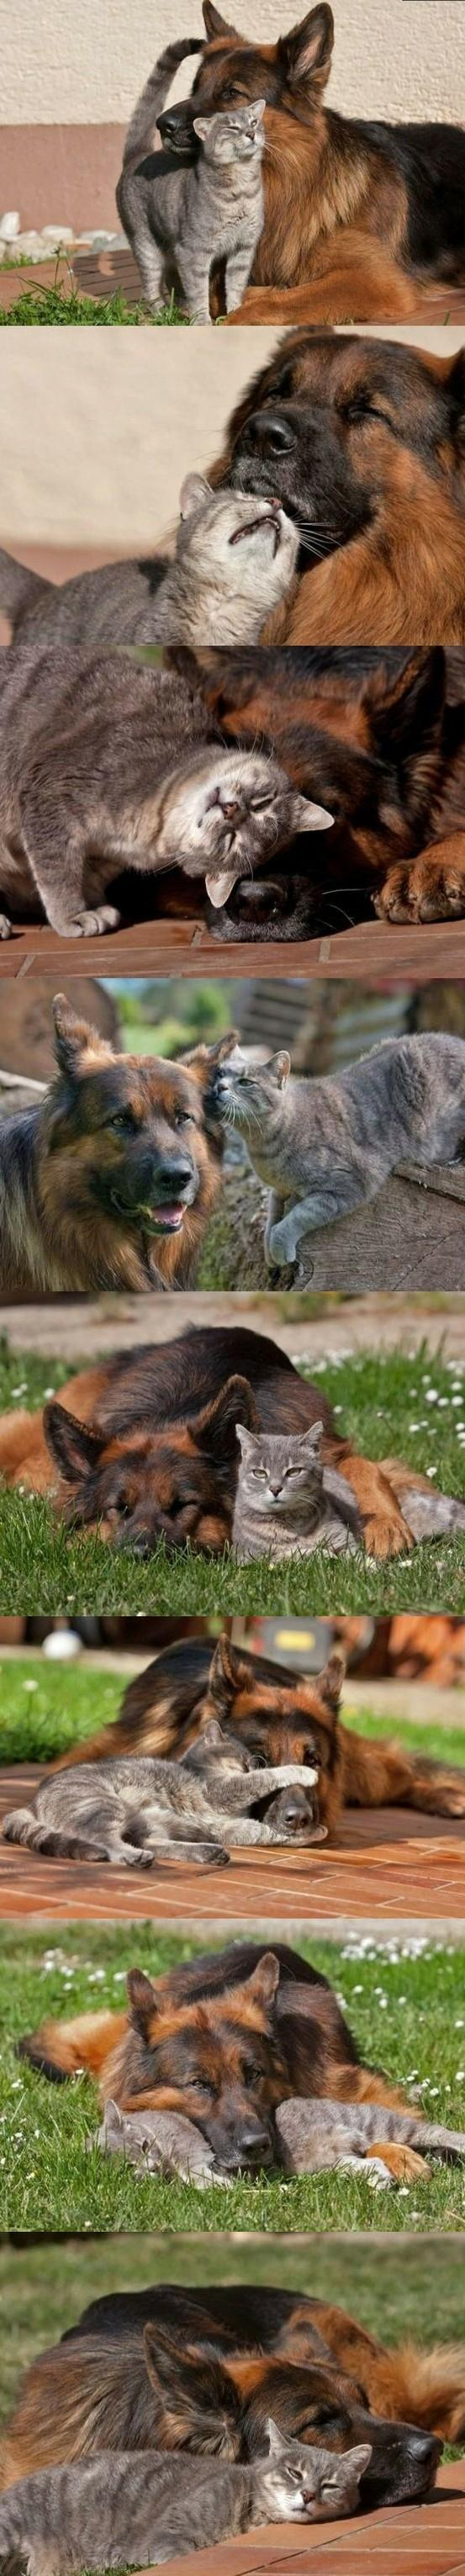 dog cat friendship The 10 Most Adorable Animal Friendships